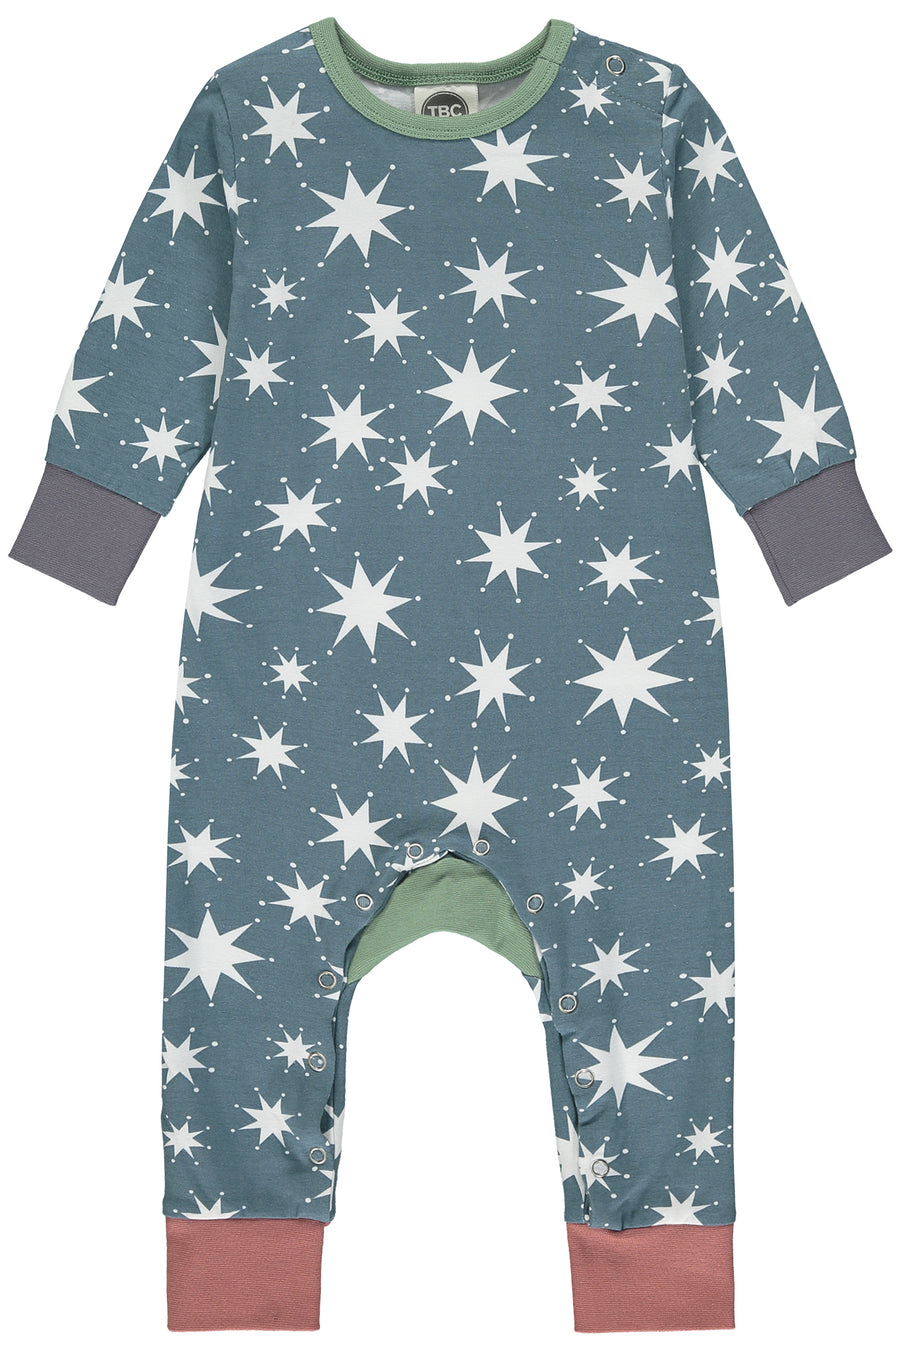 MONTY SLEEPSUIT - CHRISTMAS SPECIALS STARS